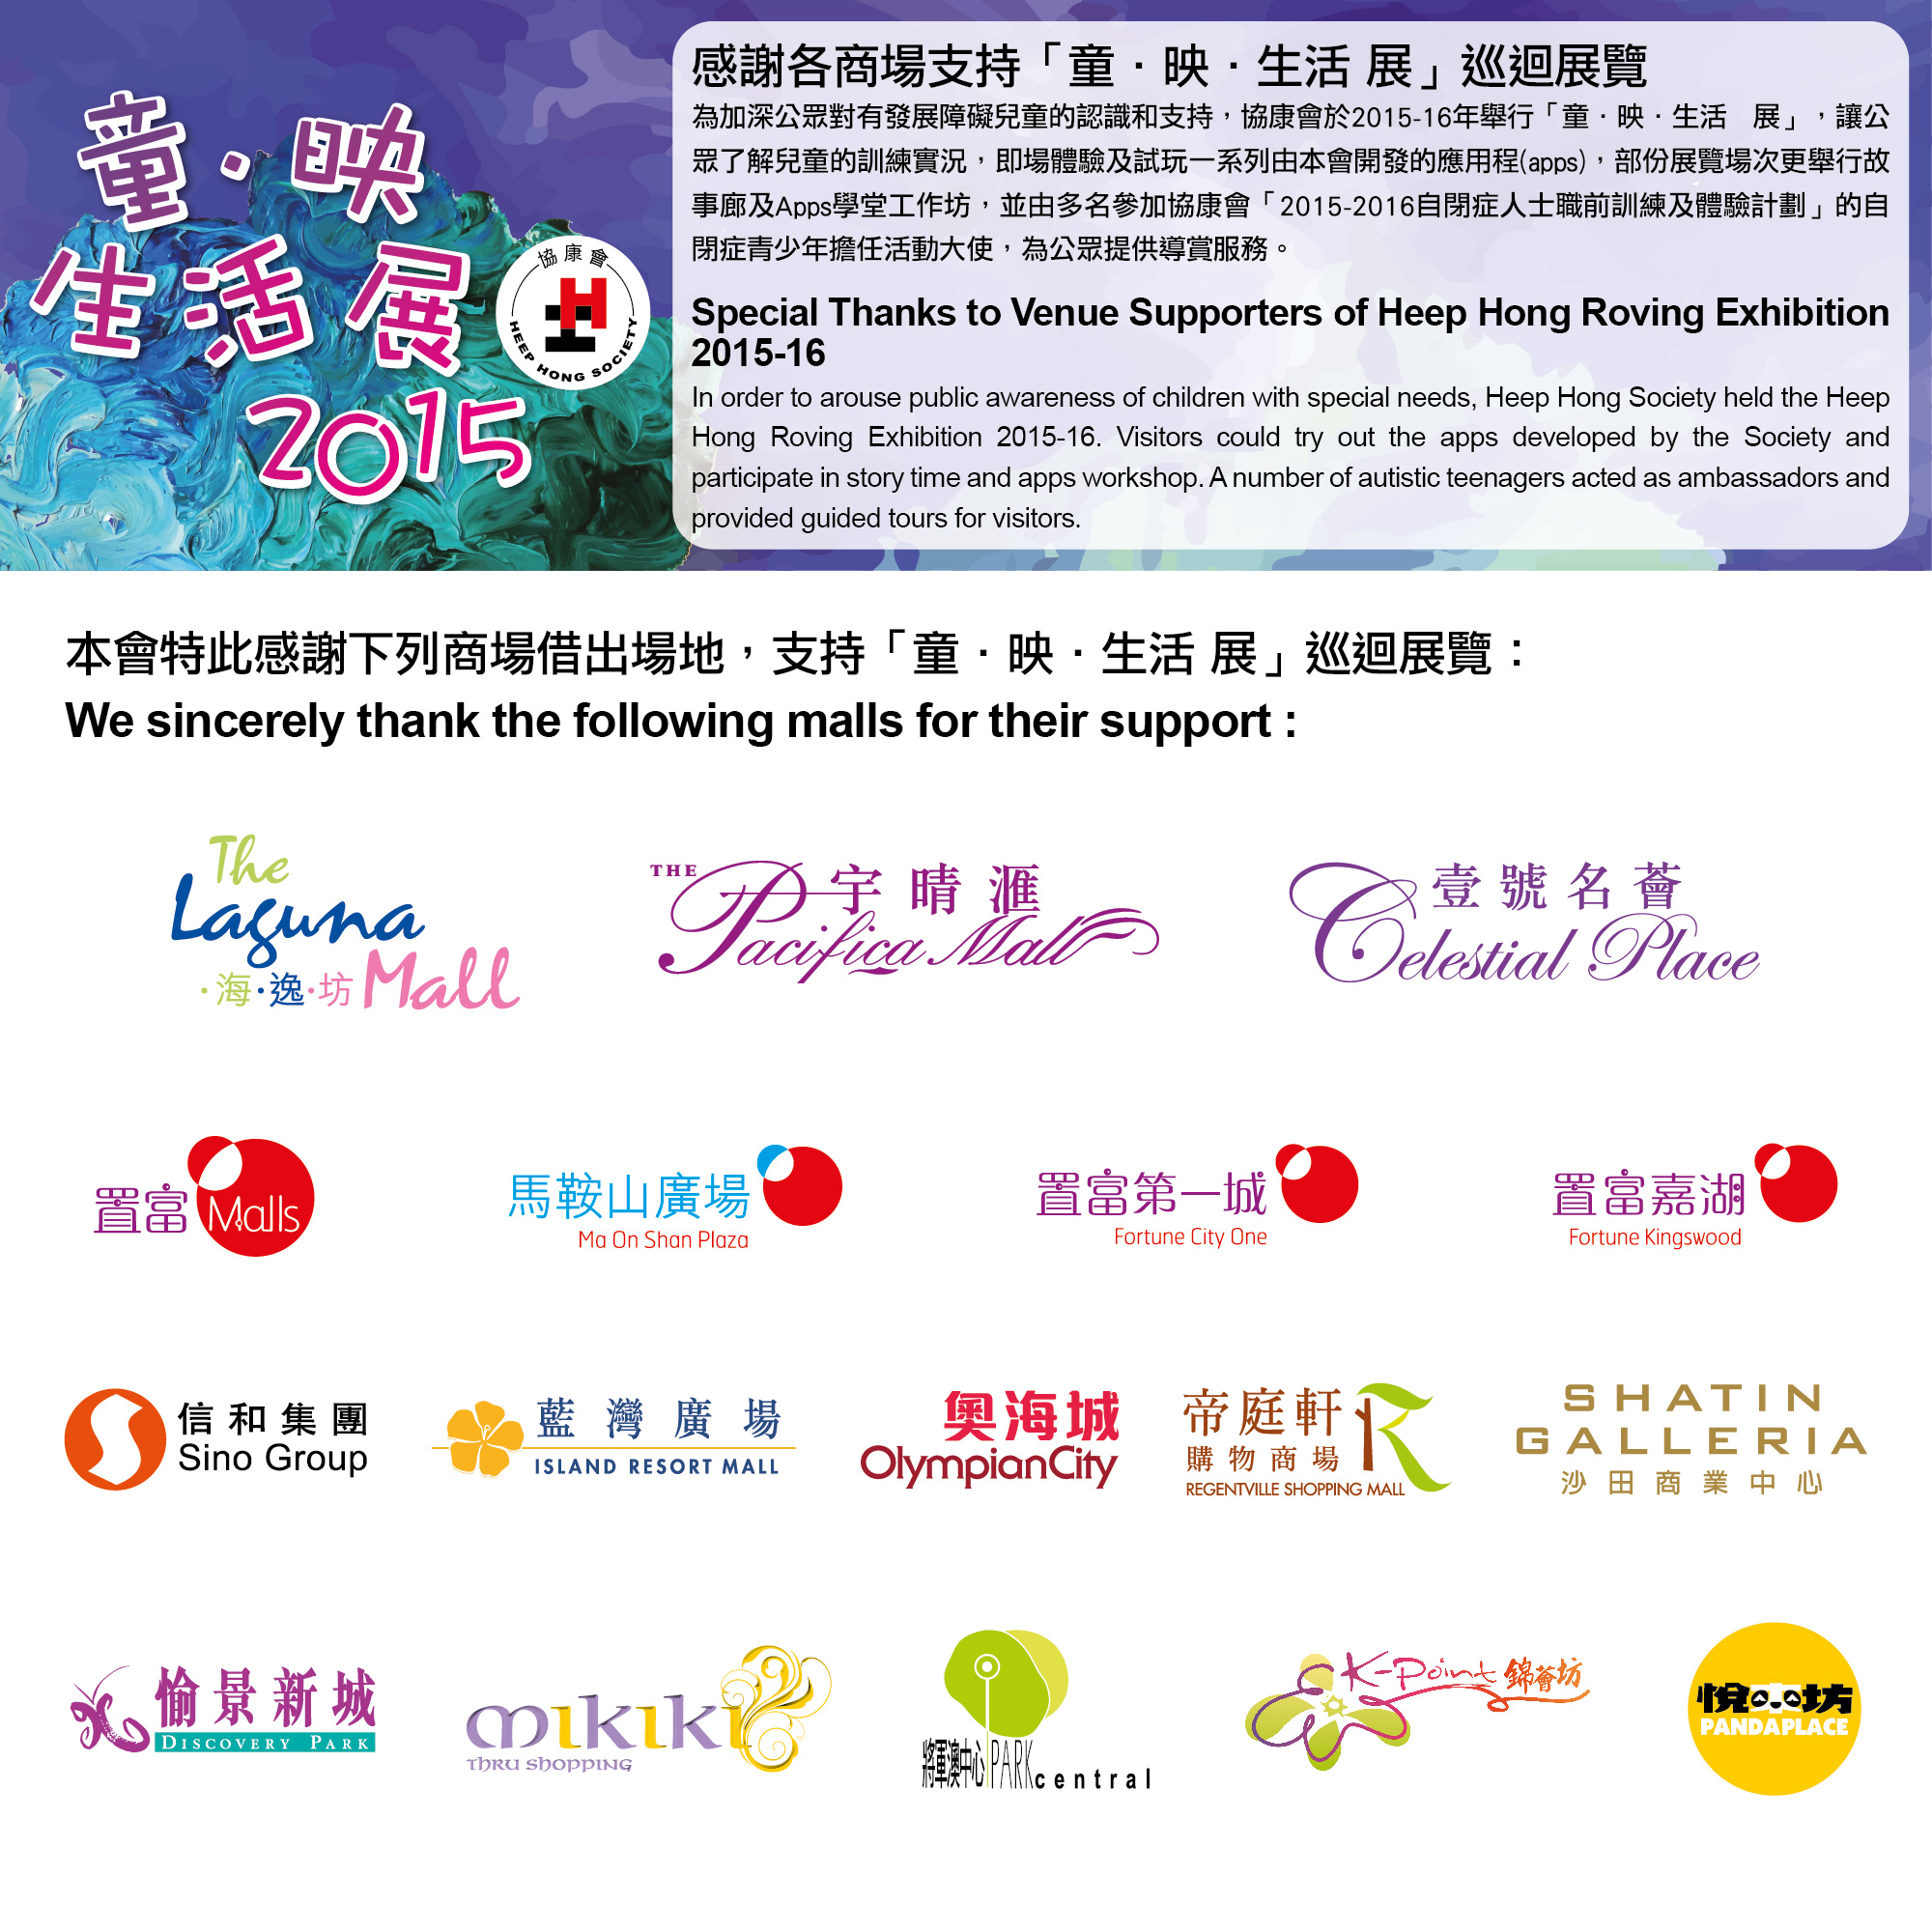 Heep Hong Roving Exhibition 2015-16 was a success. Thank you to all venue supporters.